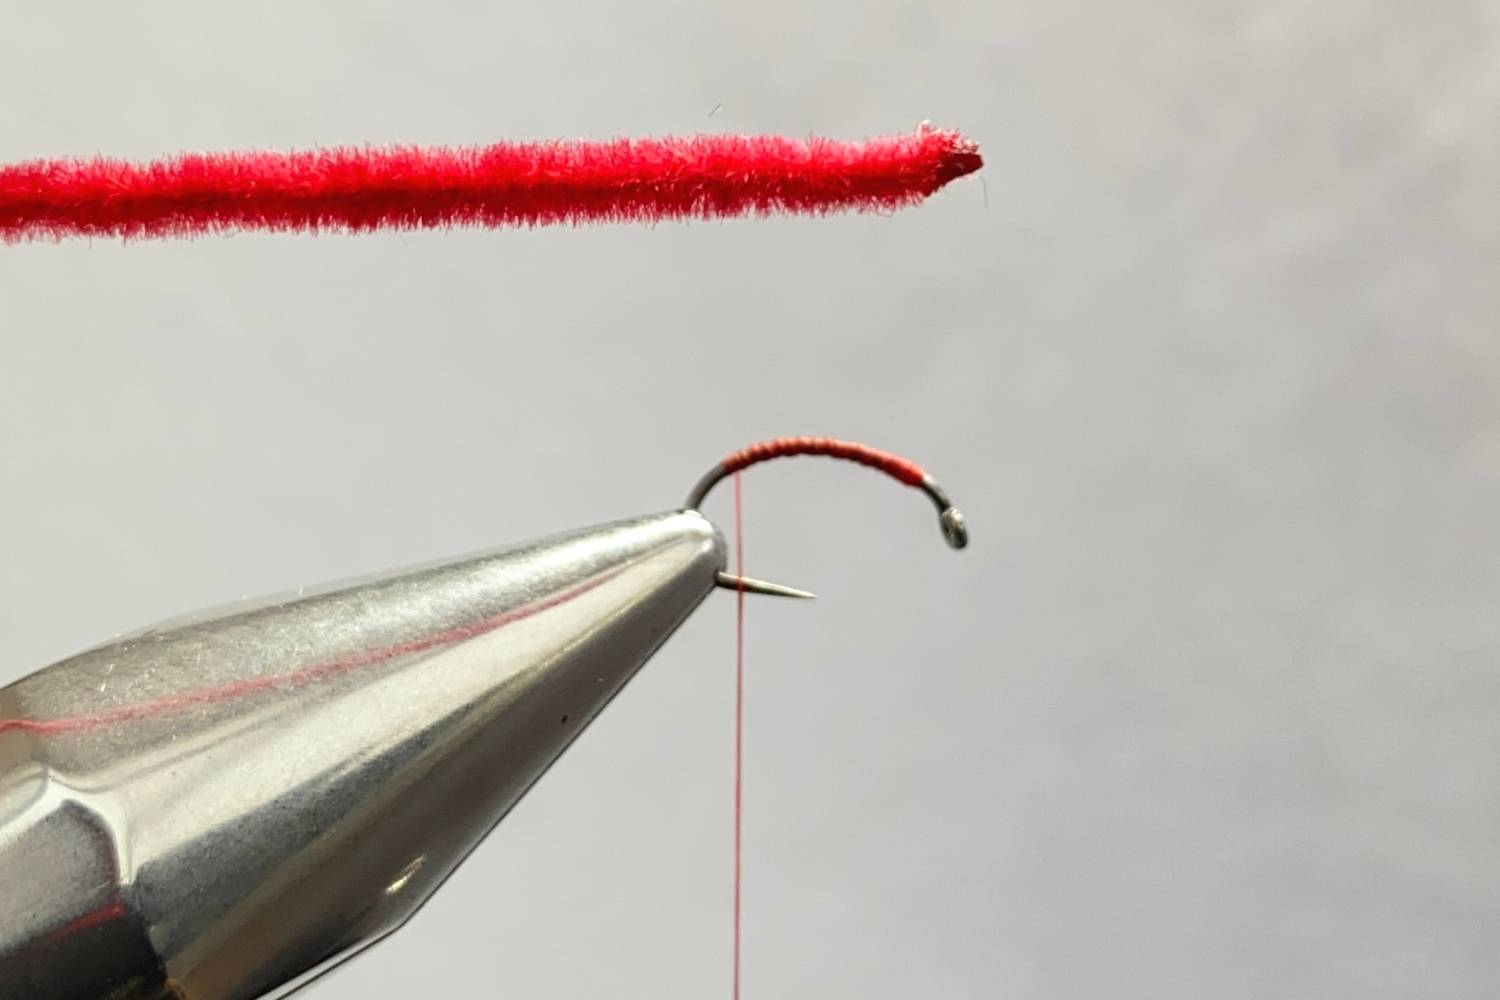 How to tie a San Juan worm fly step 4